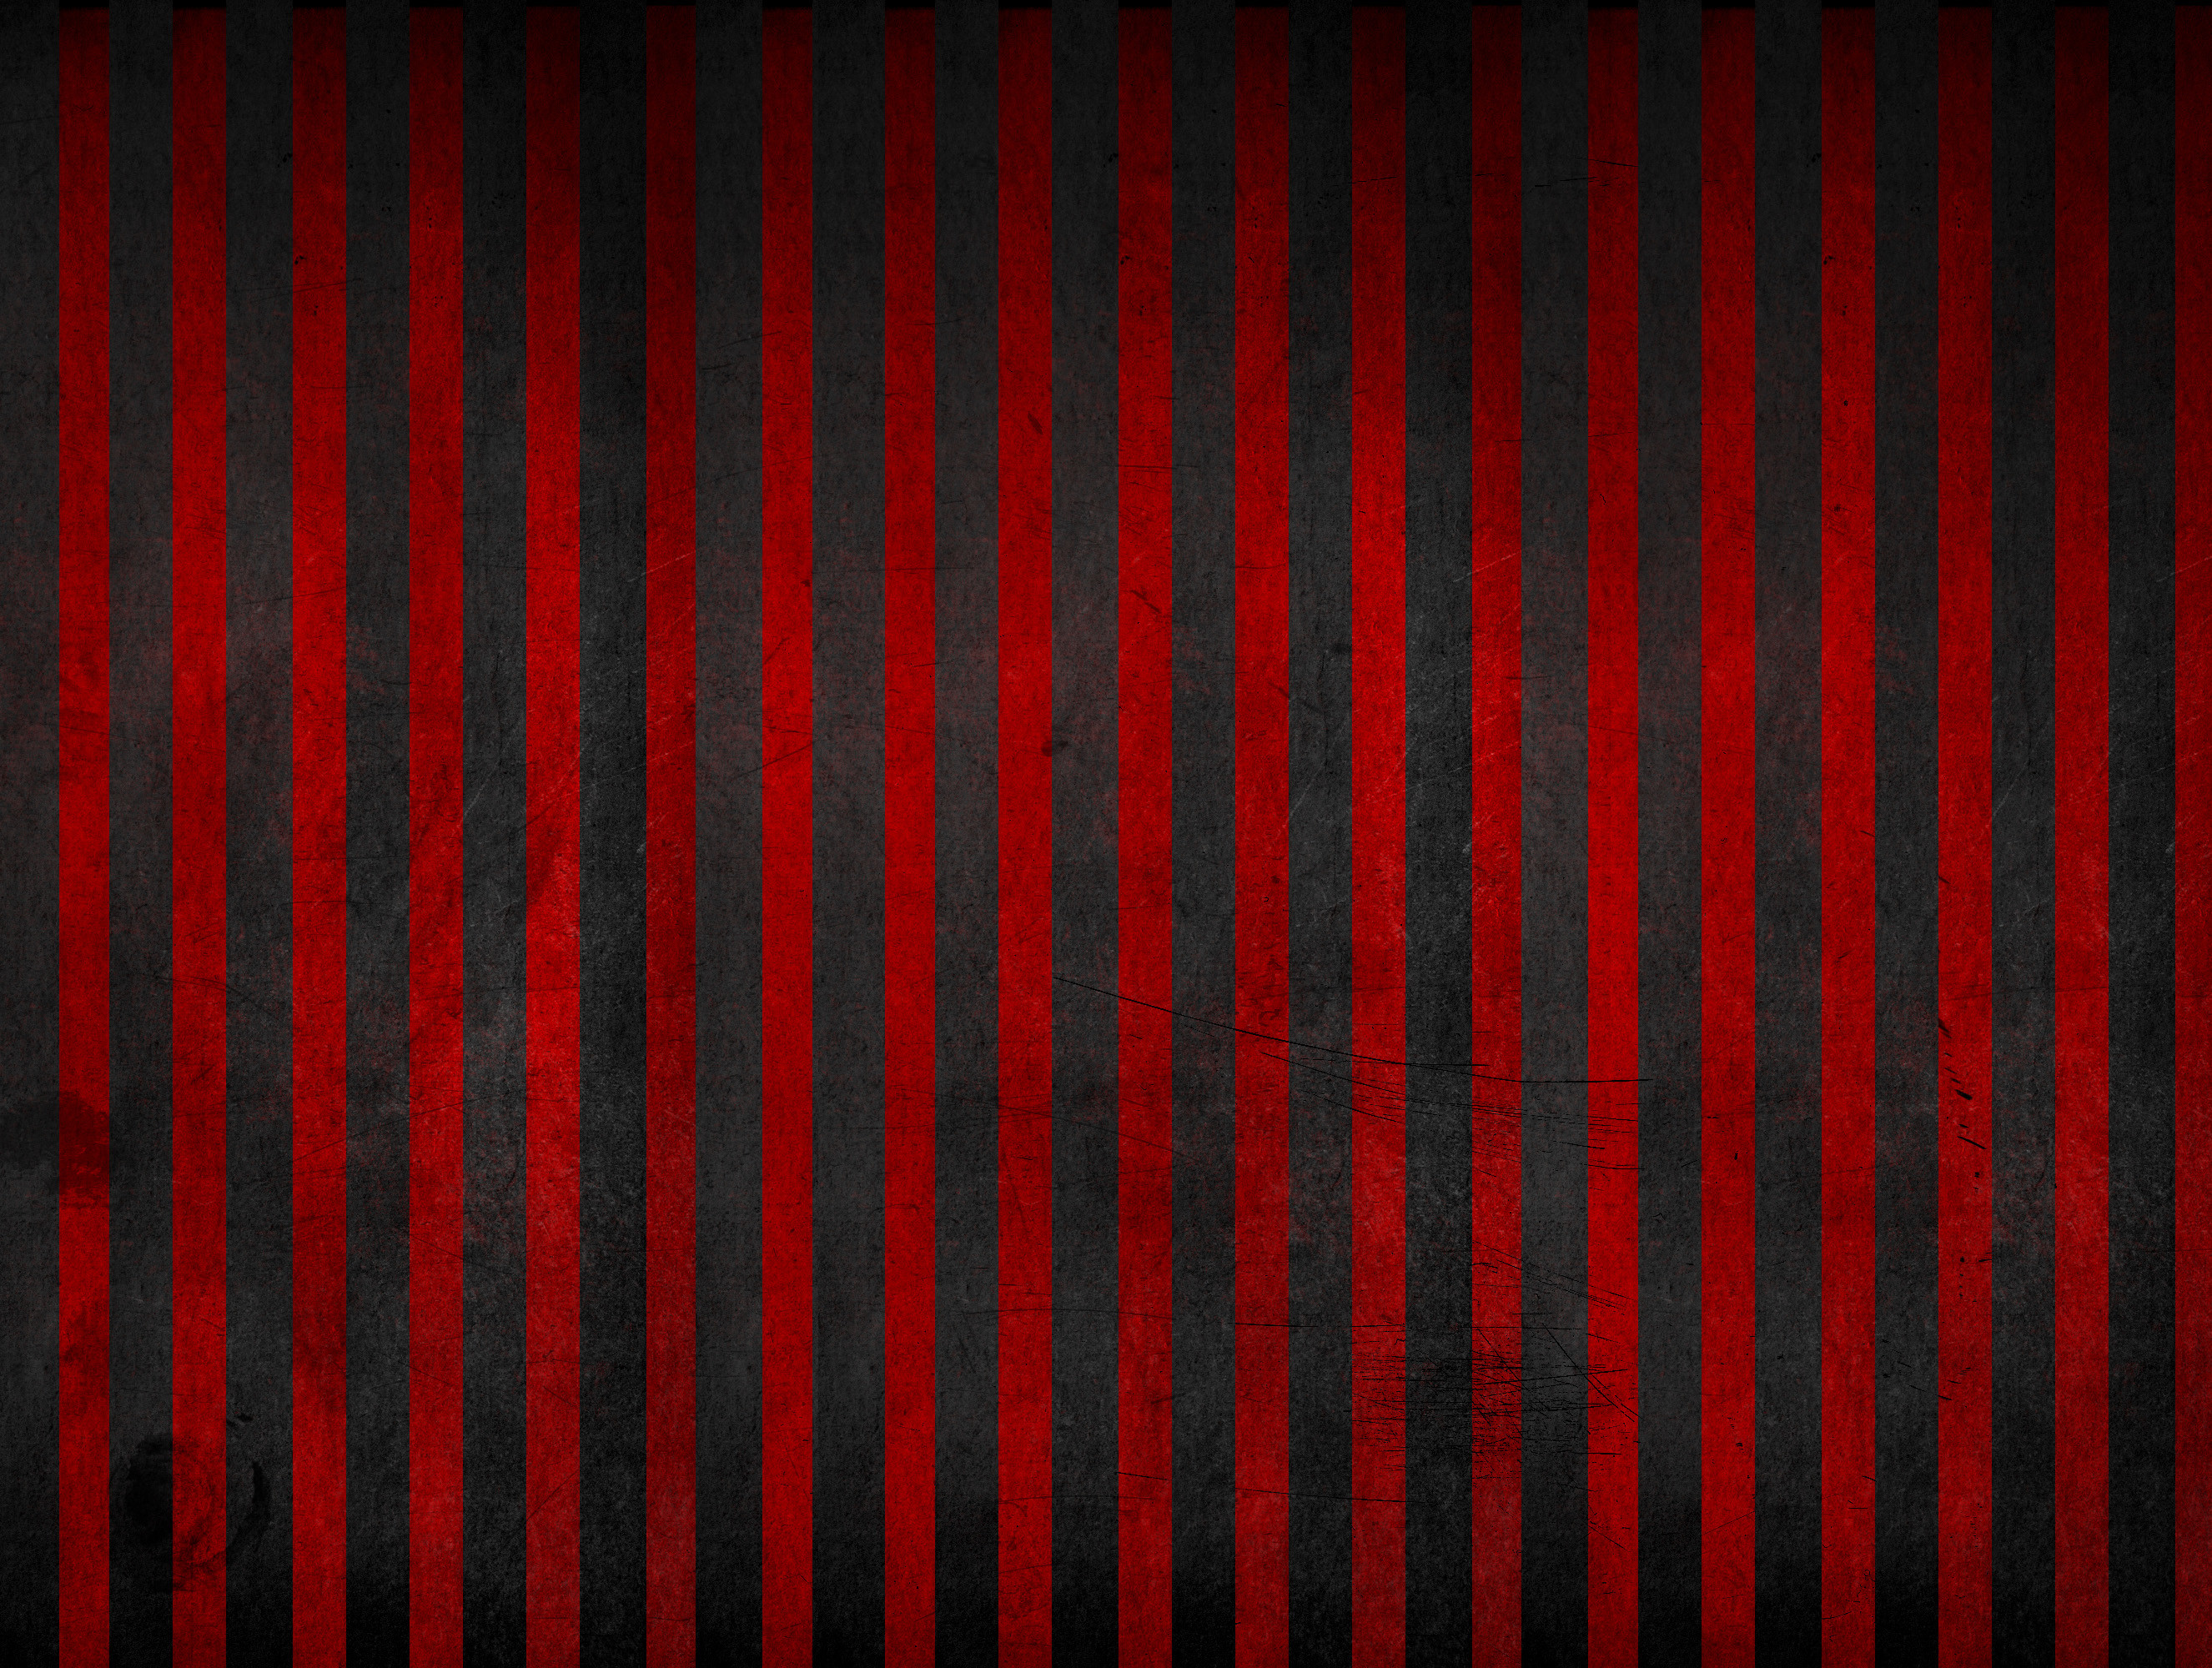 2652x2000 Gallery Of awesome Red And Black Designs 64 for Home Decor Ideas with Red  And Black Designs